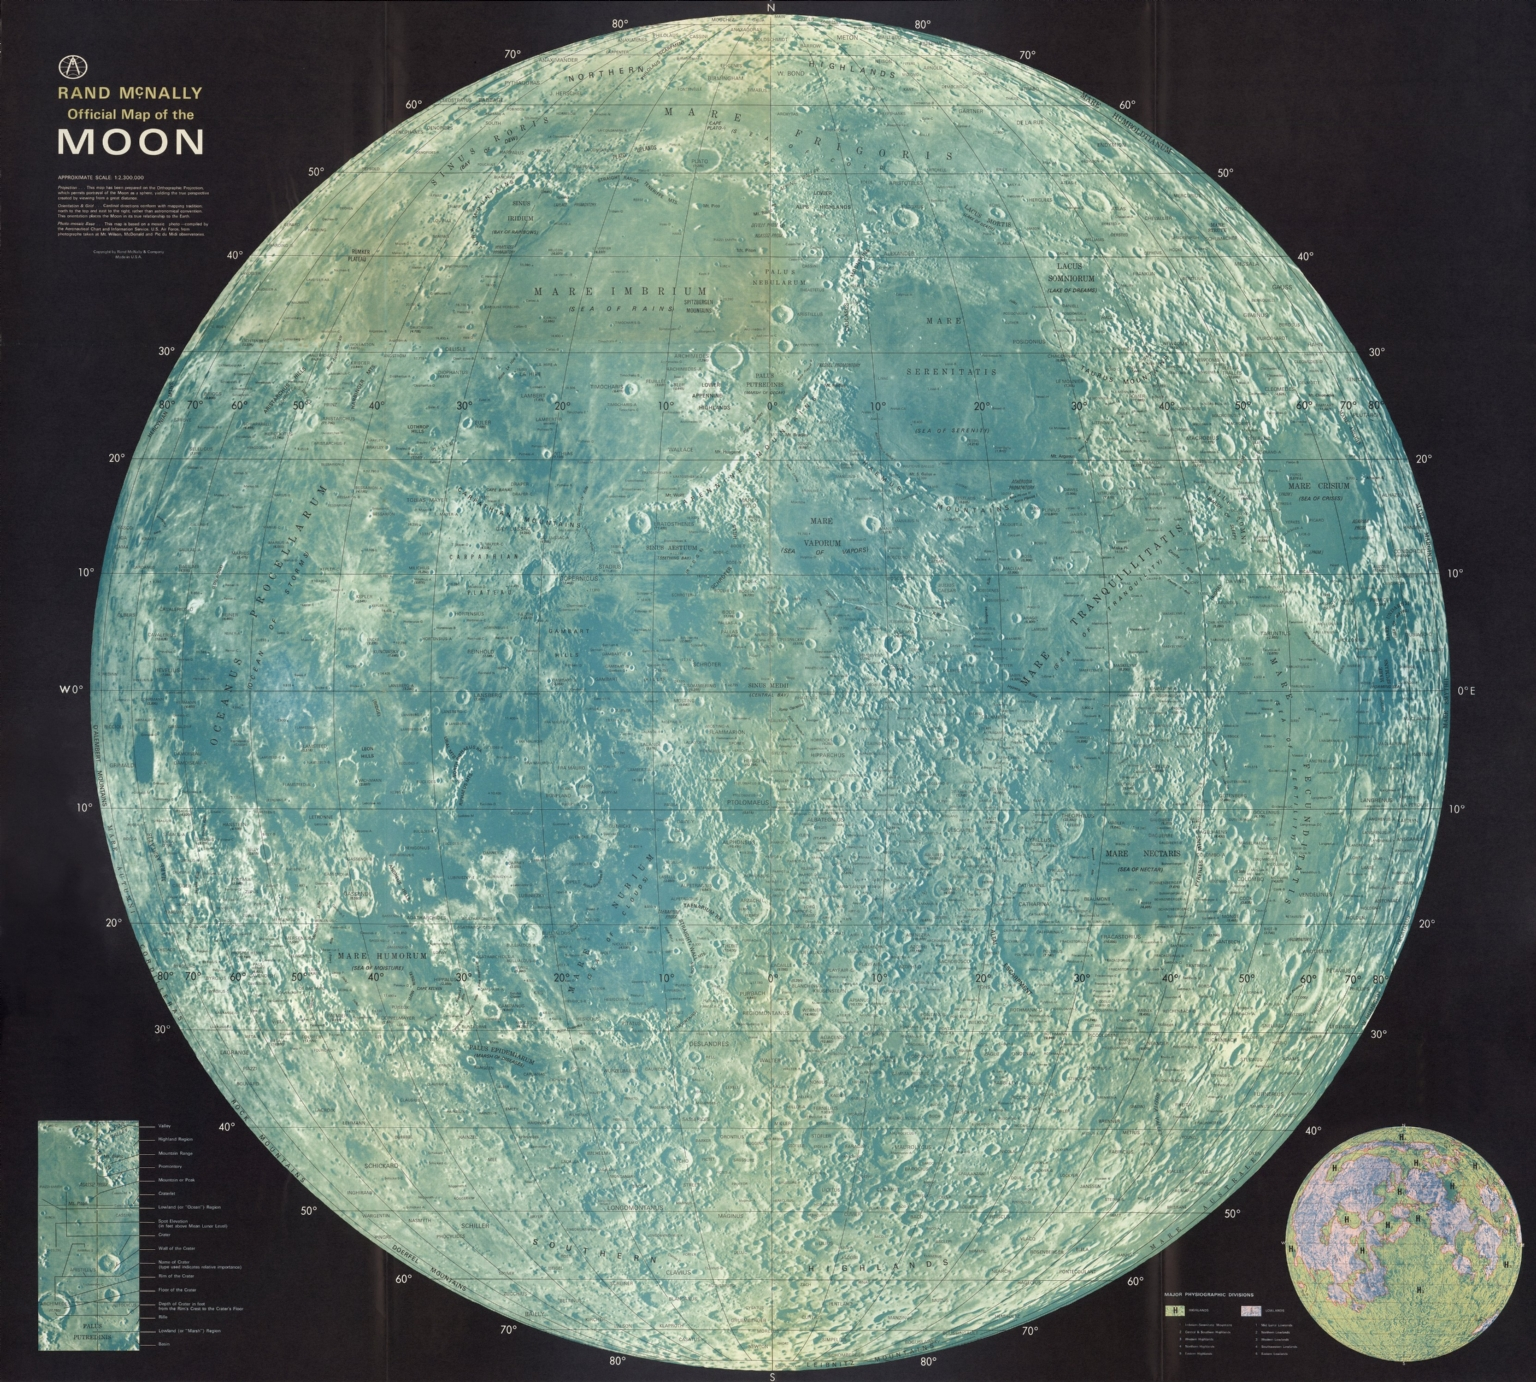 Rand McNally official map of the Moon - David Rumsey ...